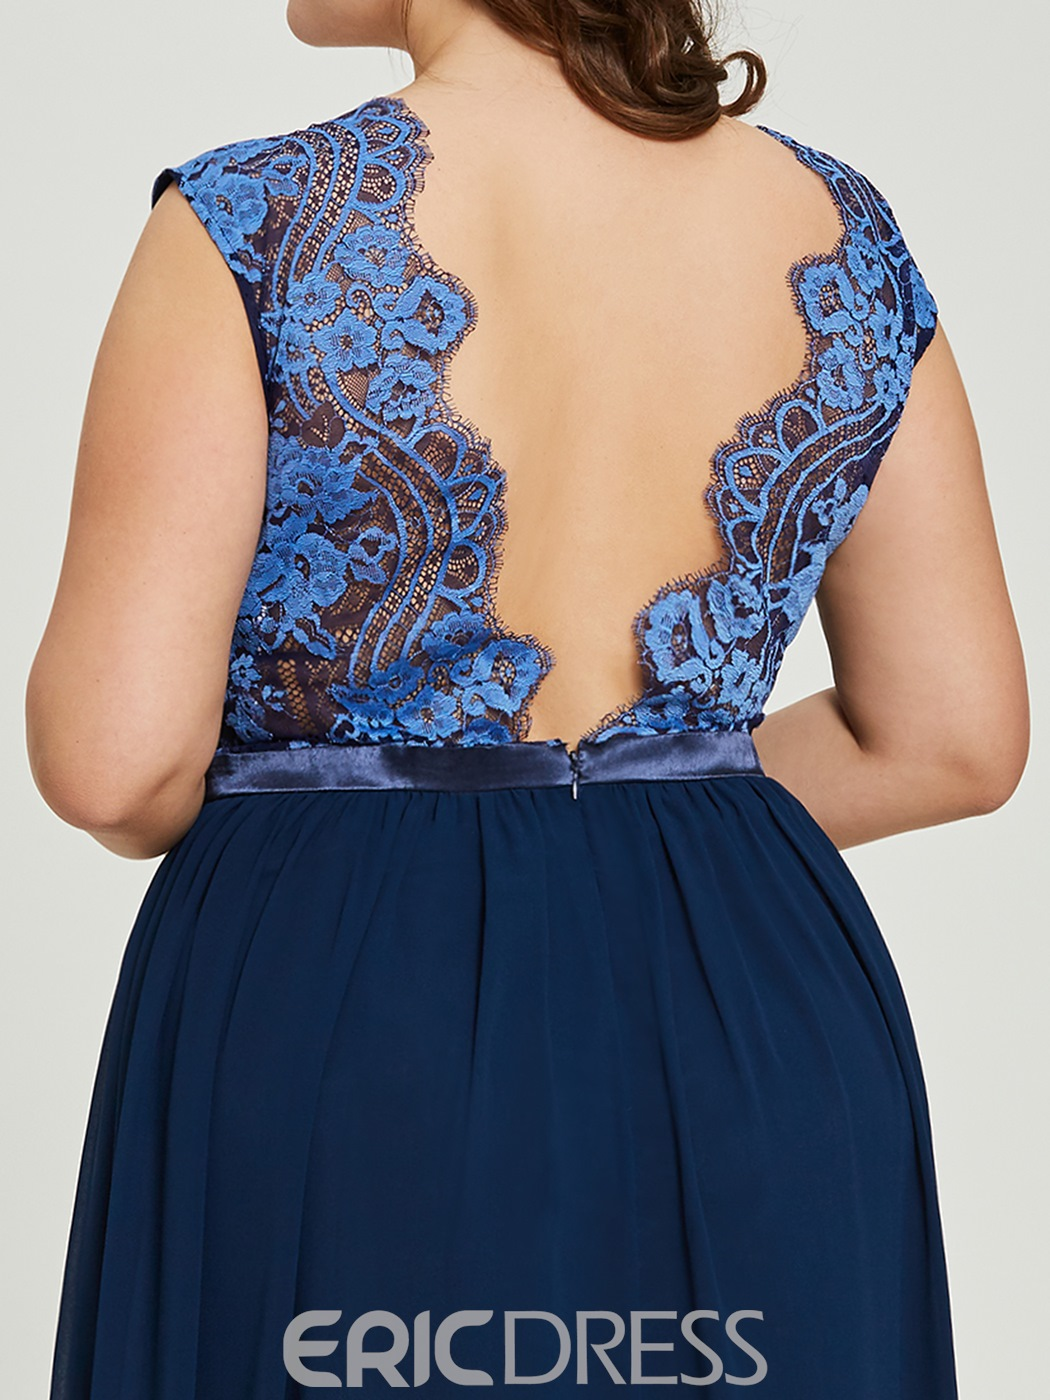 Ericdress V Neck Backless Lace A Line Long Evening Dress